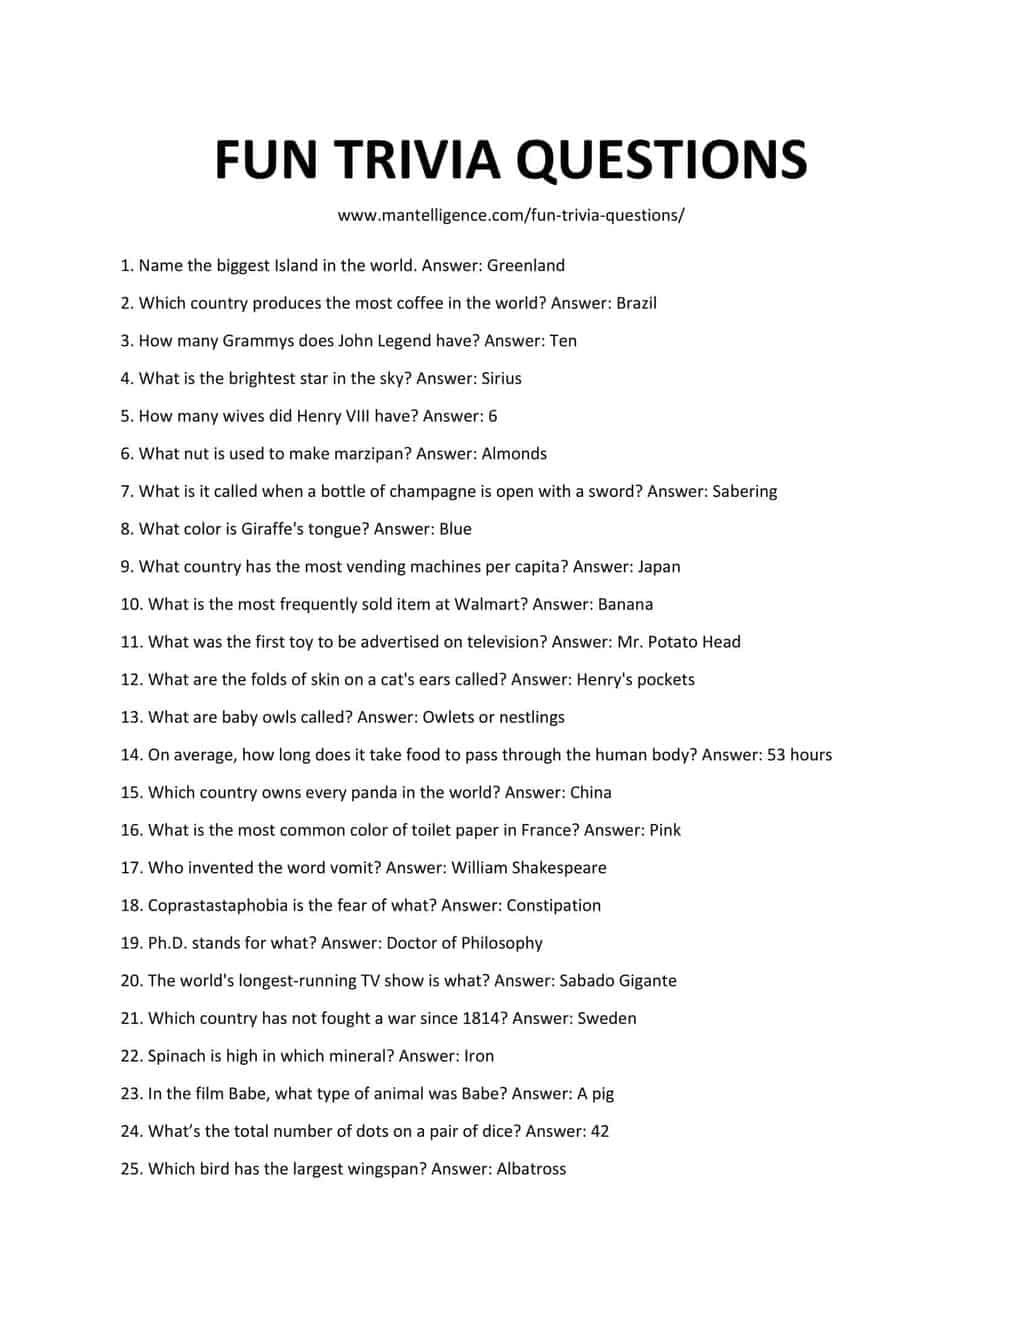 Downloadable and Printable List of Fun Trivia Questions